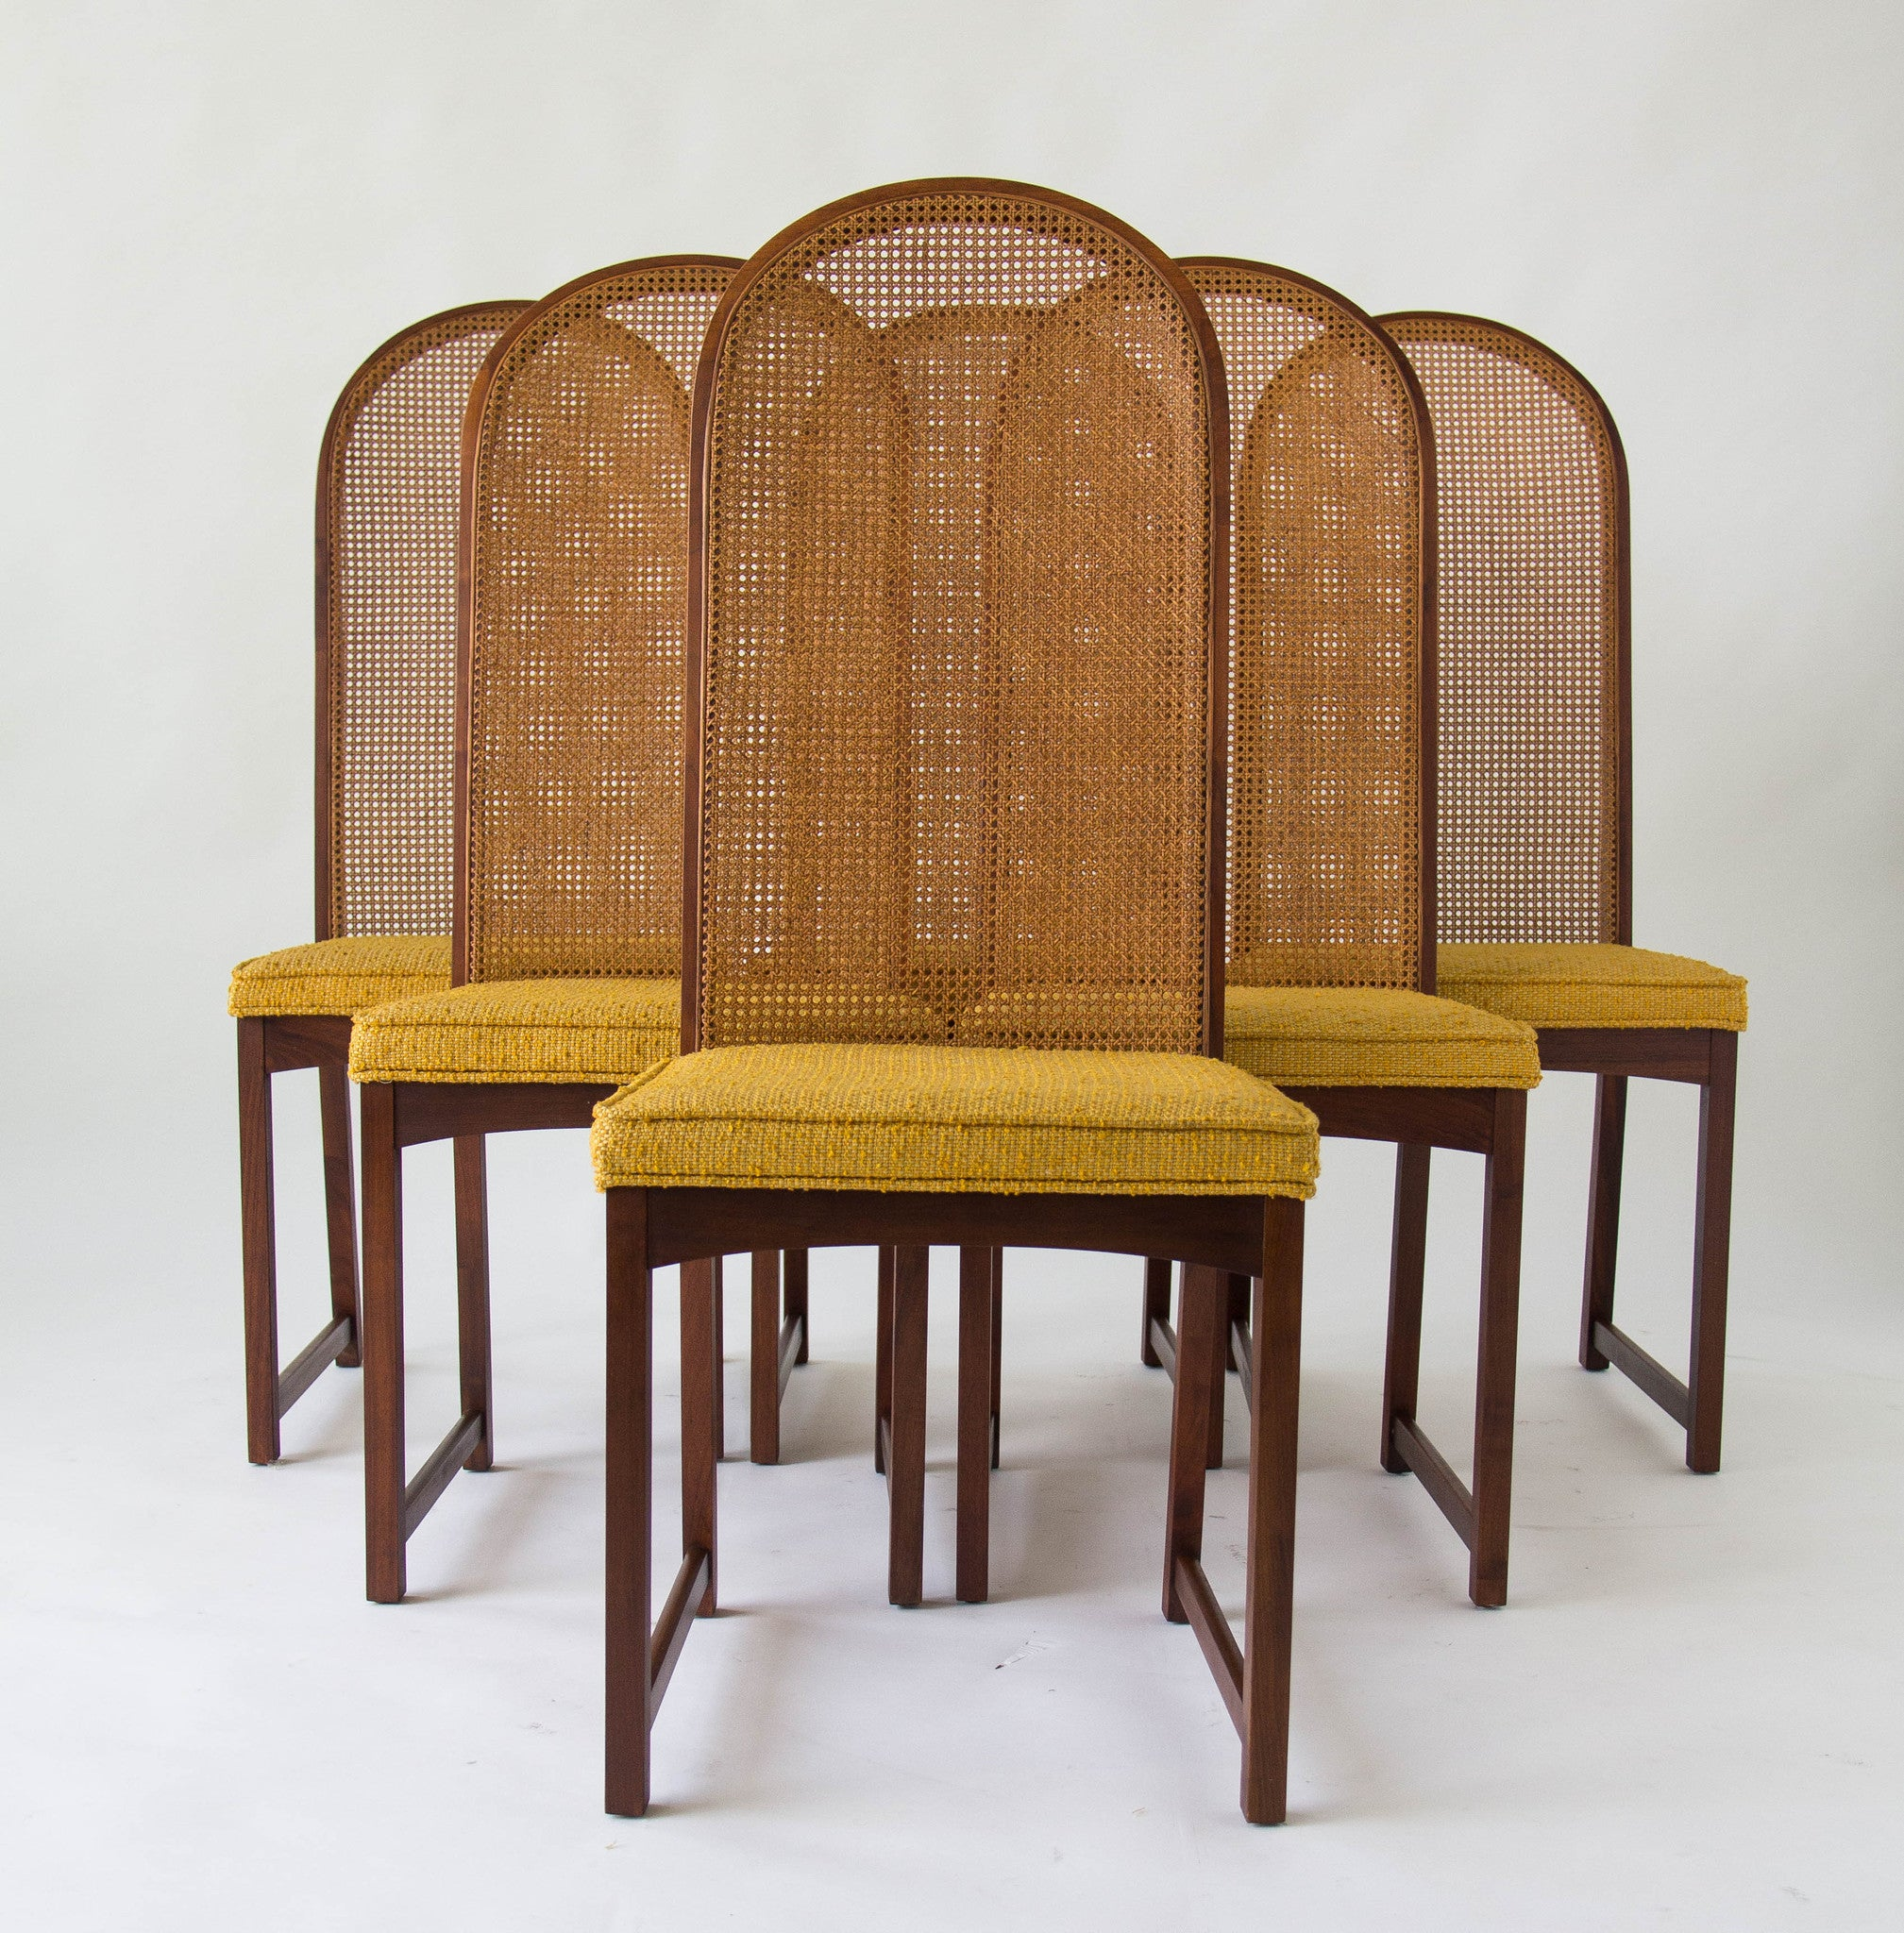 Marvelous Set Of Six High Backed Cane Dining Chairs By Milo Baughman